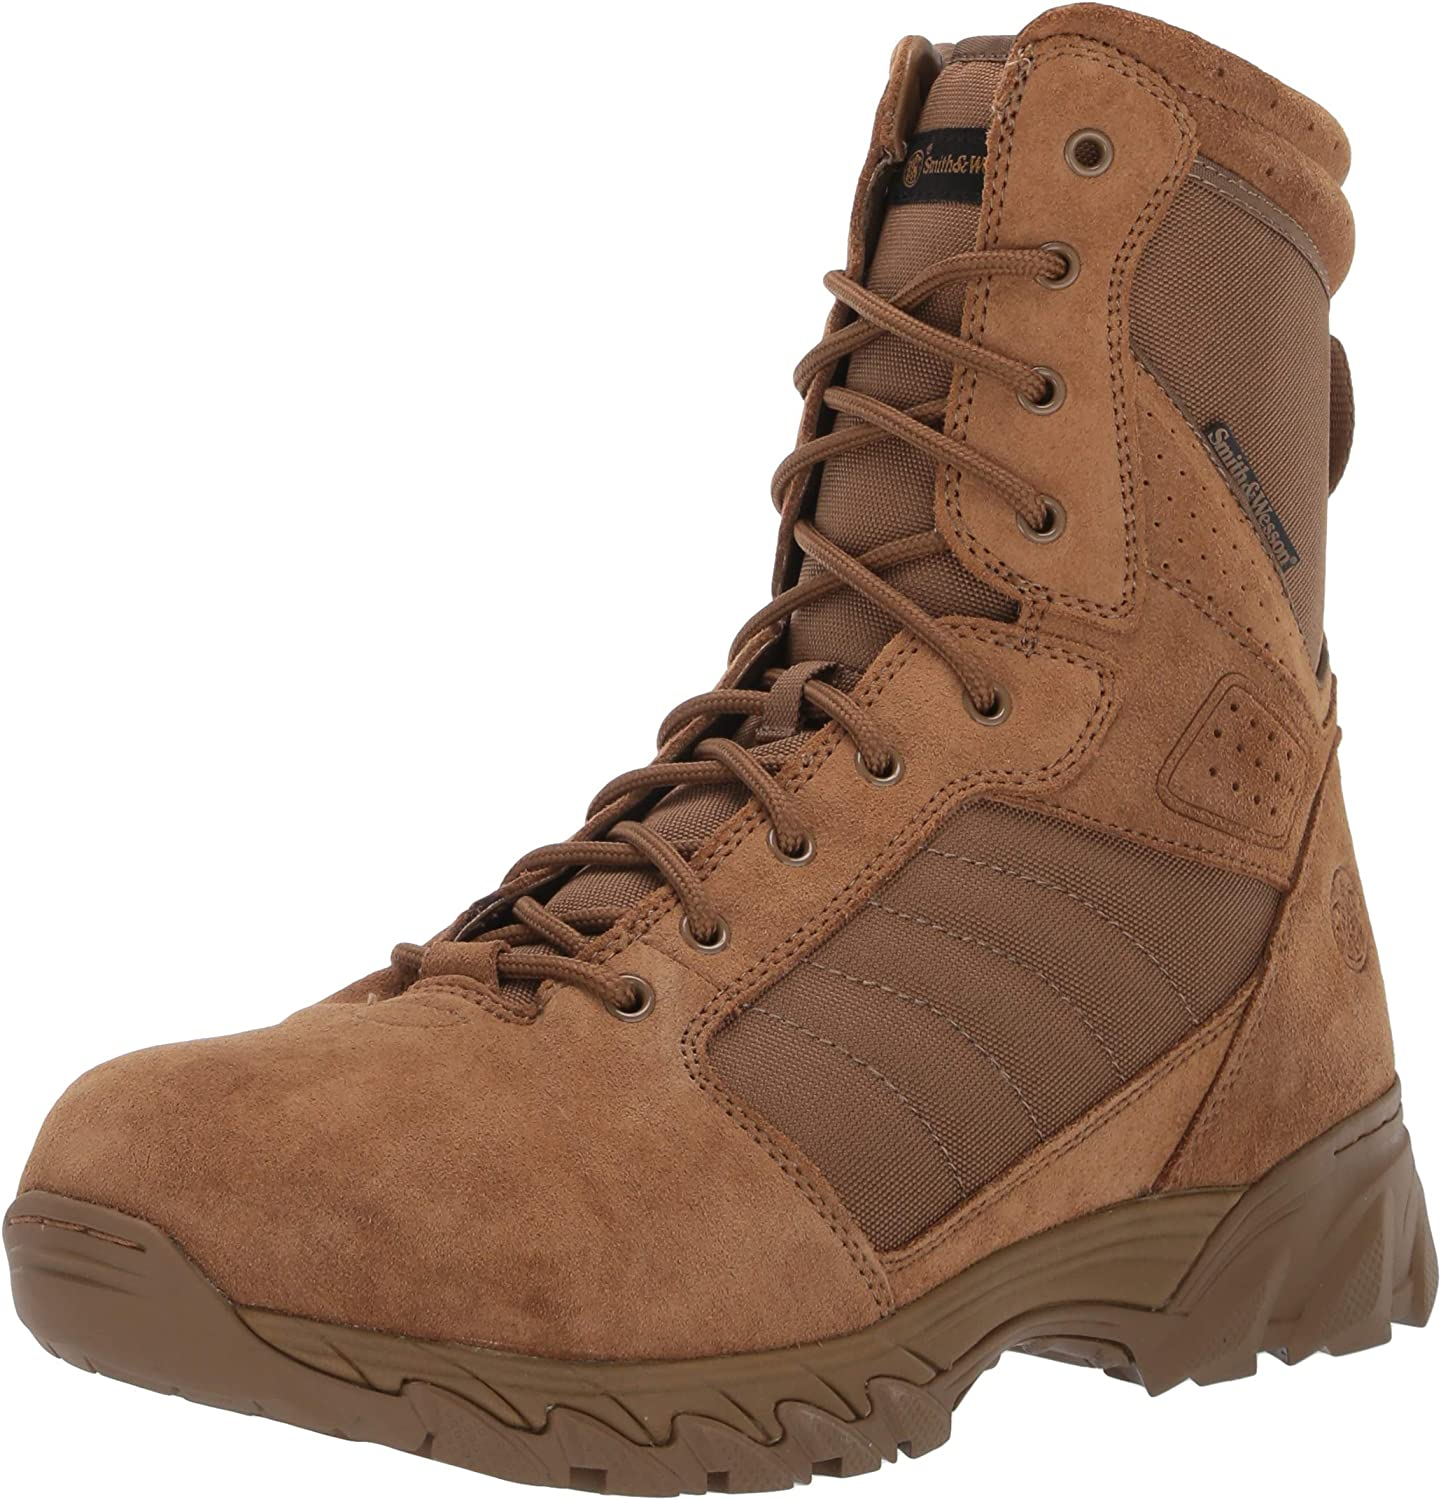 Smith /& Wesson Breach 2.0 Mens Tactical Waterproof Side-Zip Boots